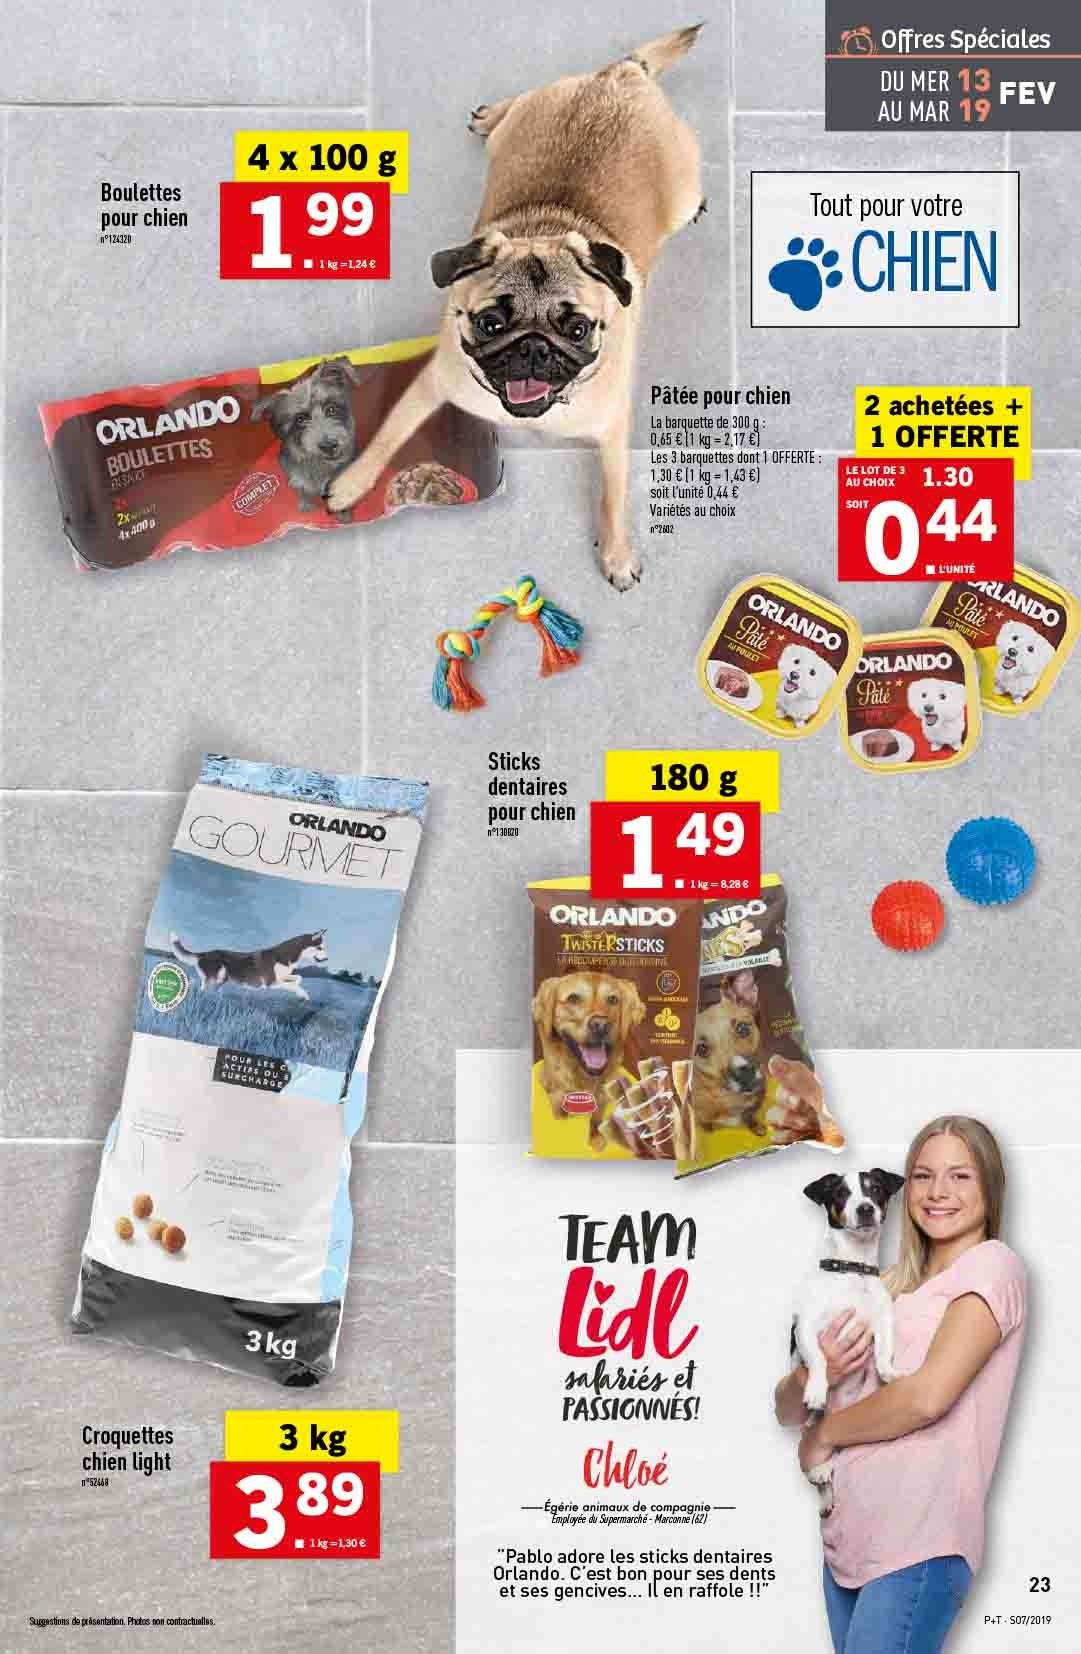 Catalogue Lidl - 13.02.2019 - 19.02.2019. Page 23.